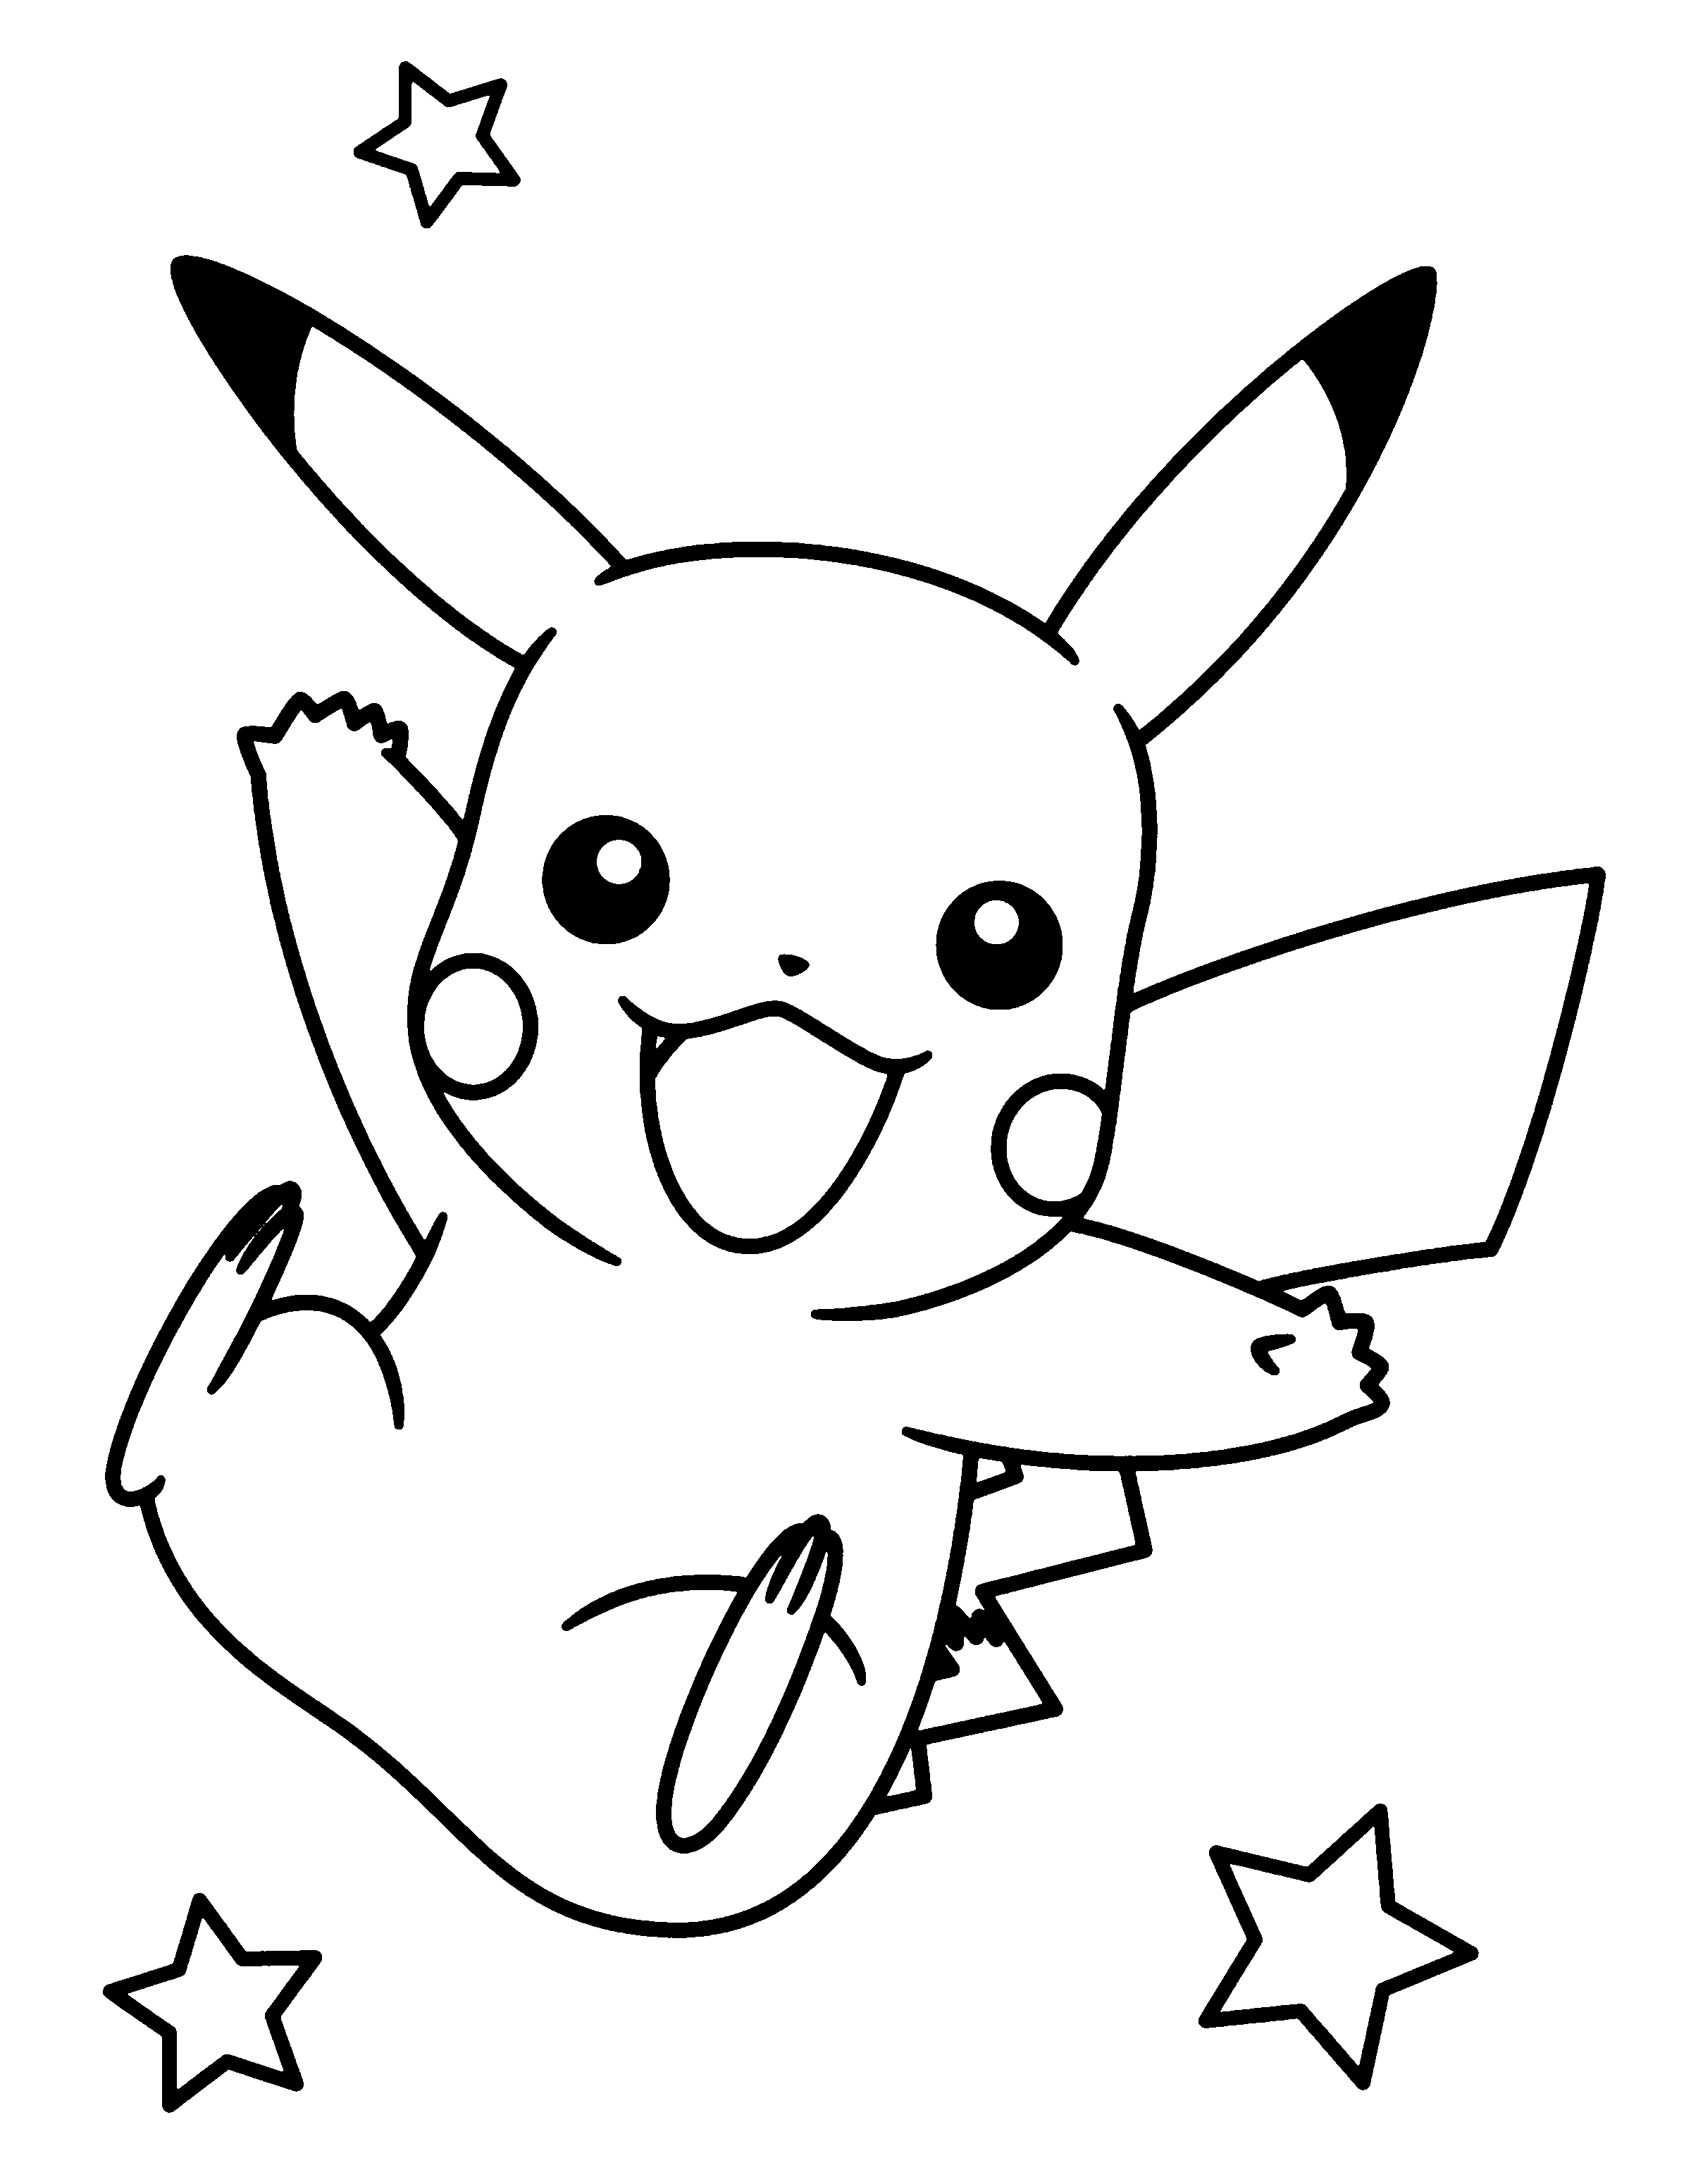 pokemon-diamond-pearl-coloring-pages-6.png (6×6)  Pokemon